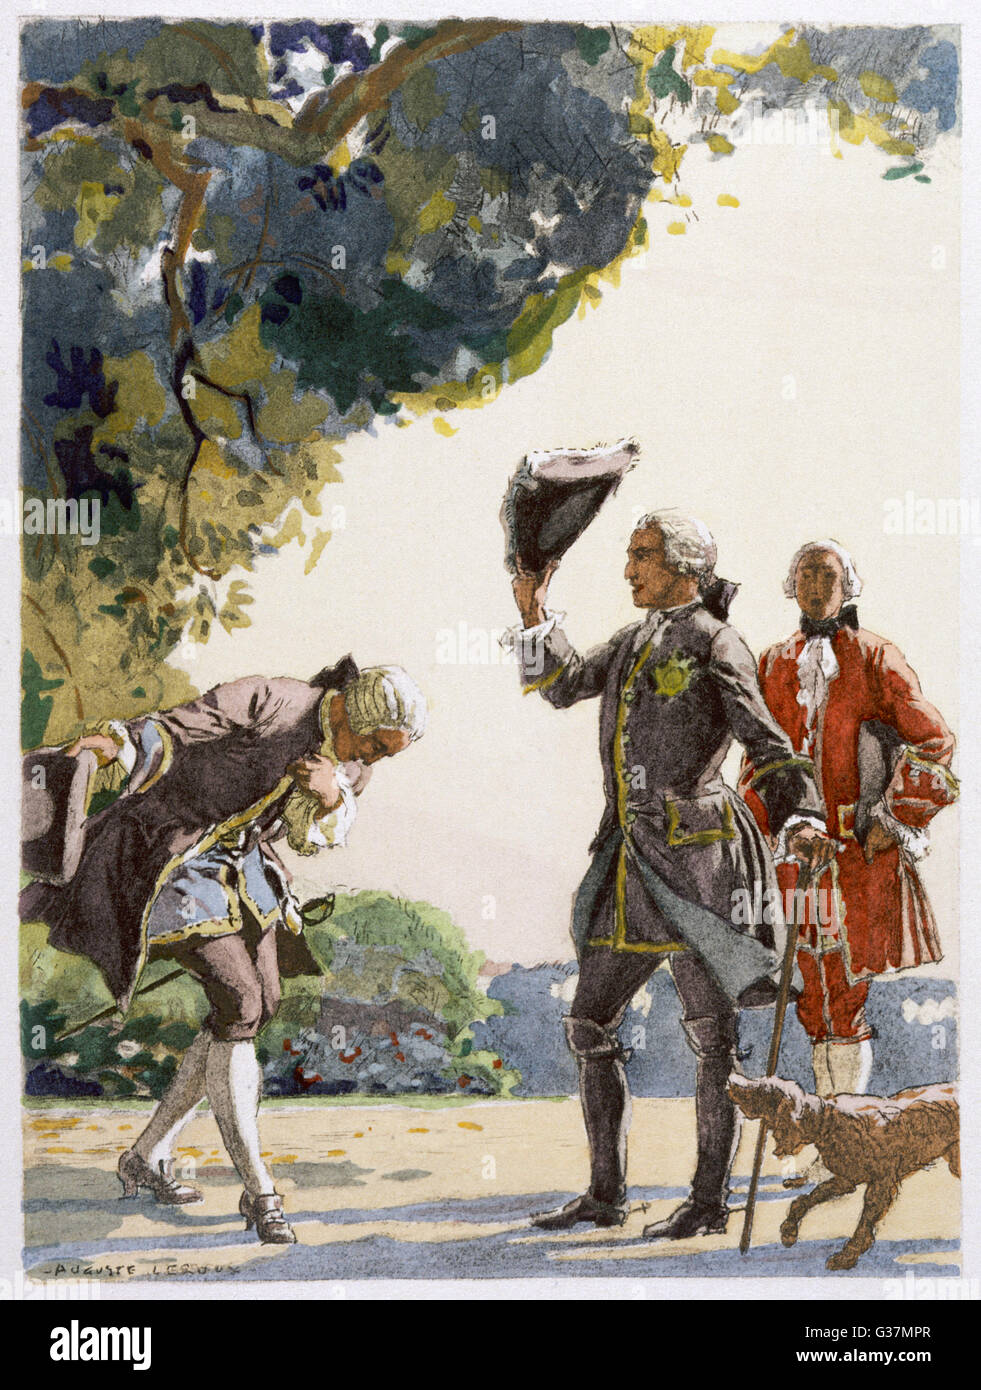 Two gentlemen meet - both doff  their hats, the inferior one  bows as well        Date: mid 18th century - Stock Image